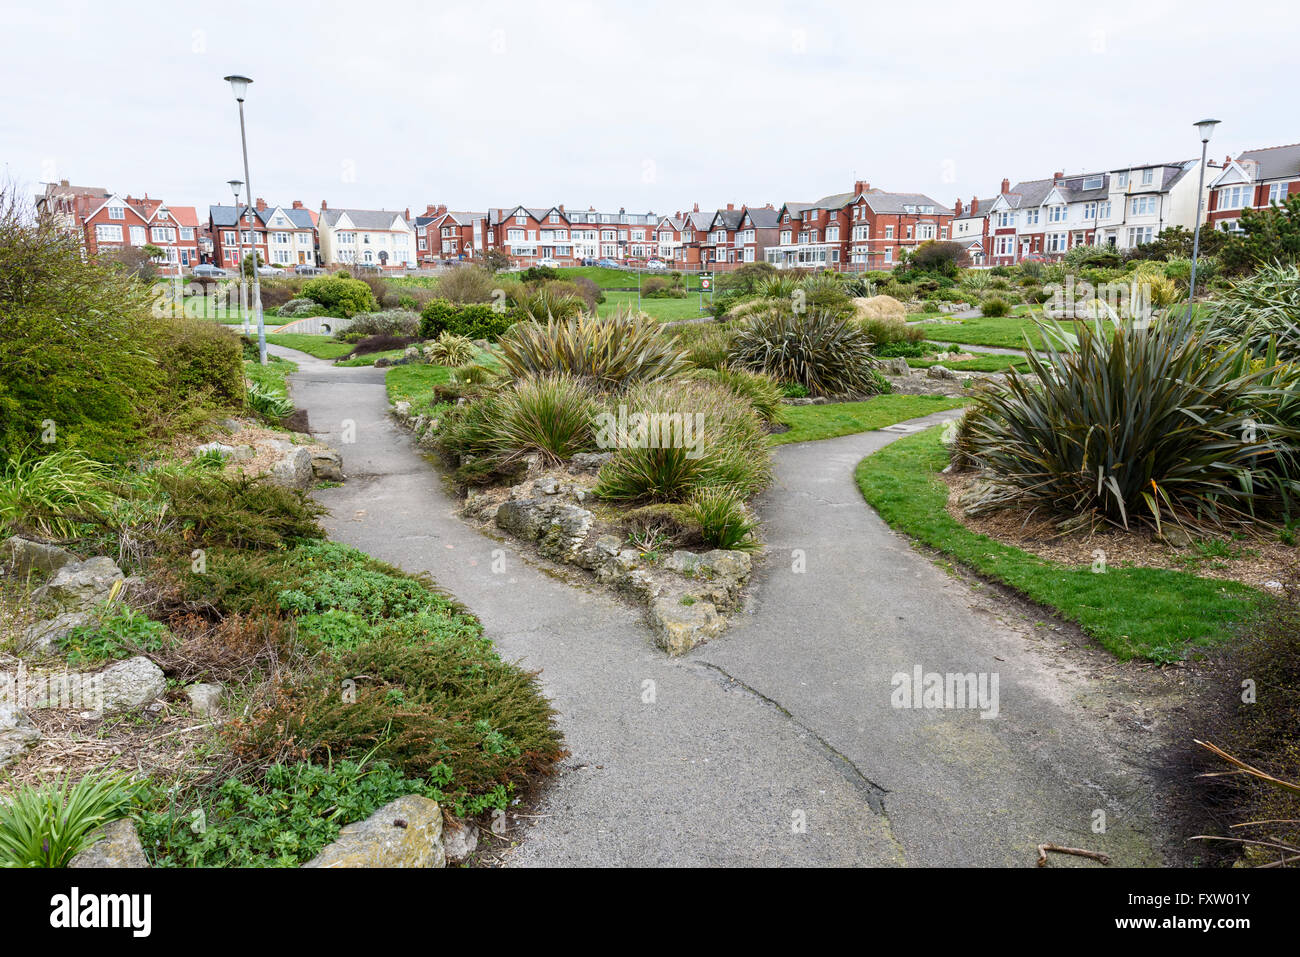 View across Gynn Park, a public open space in Blackpool, Lancashire - Stock Image